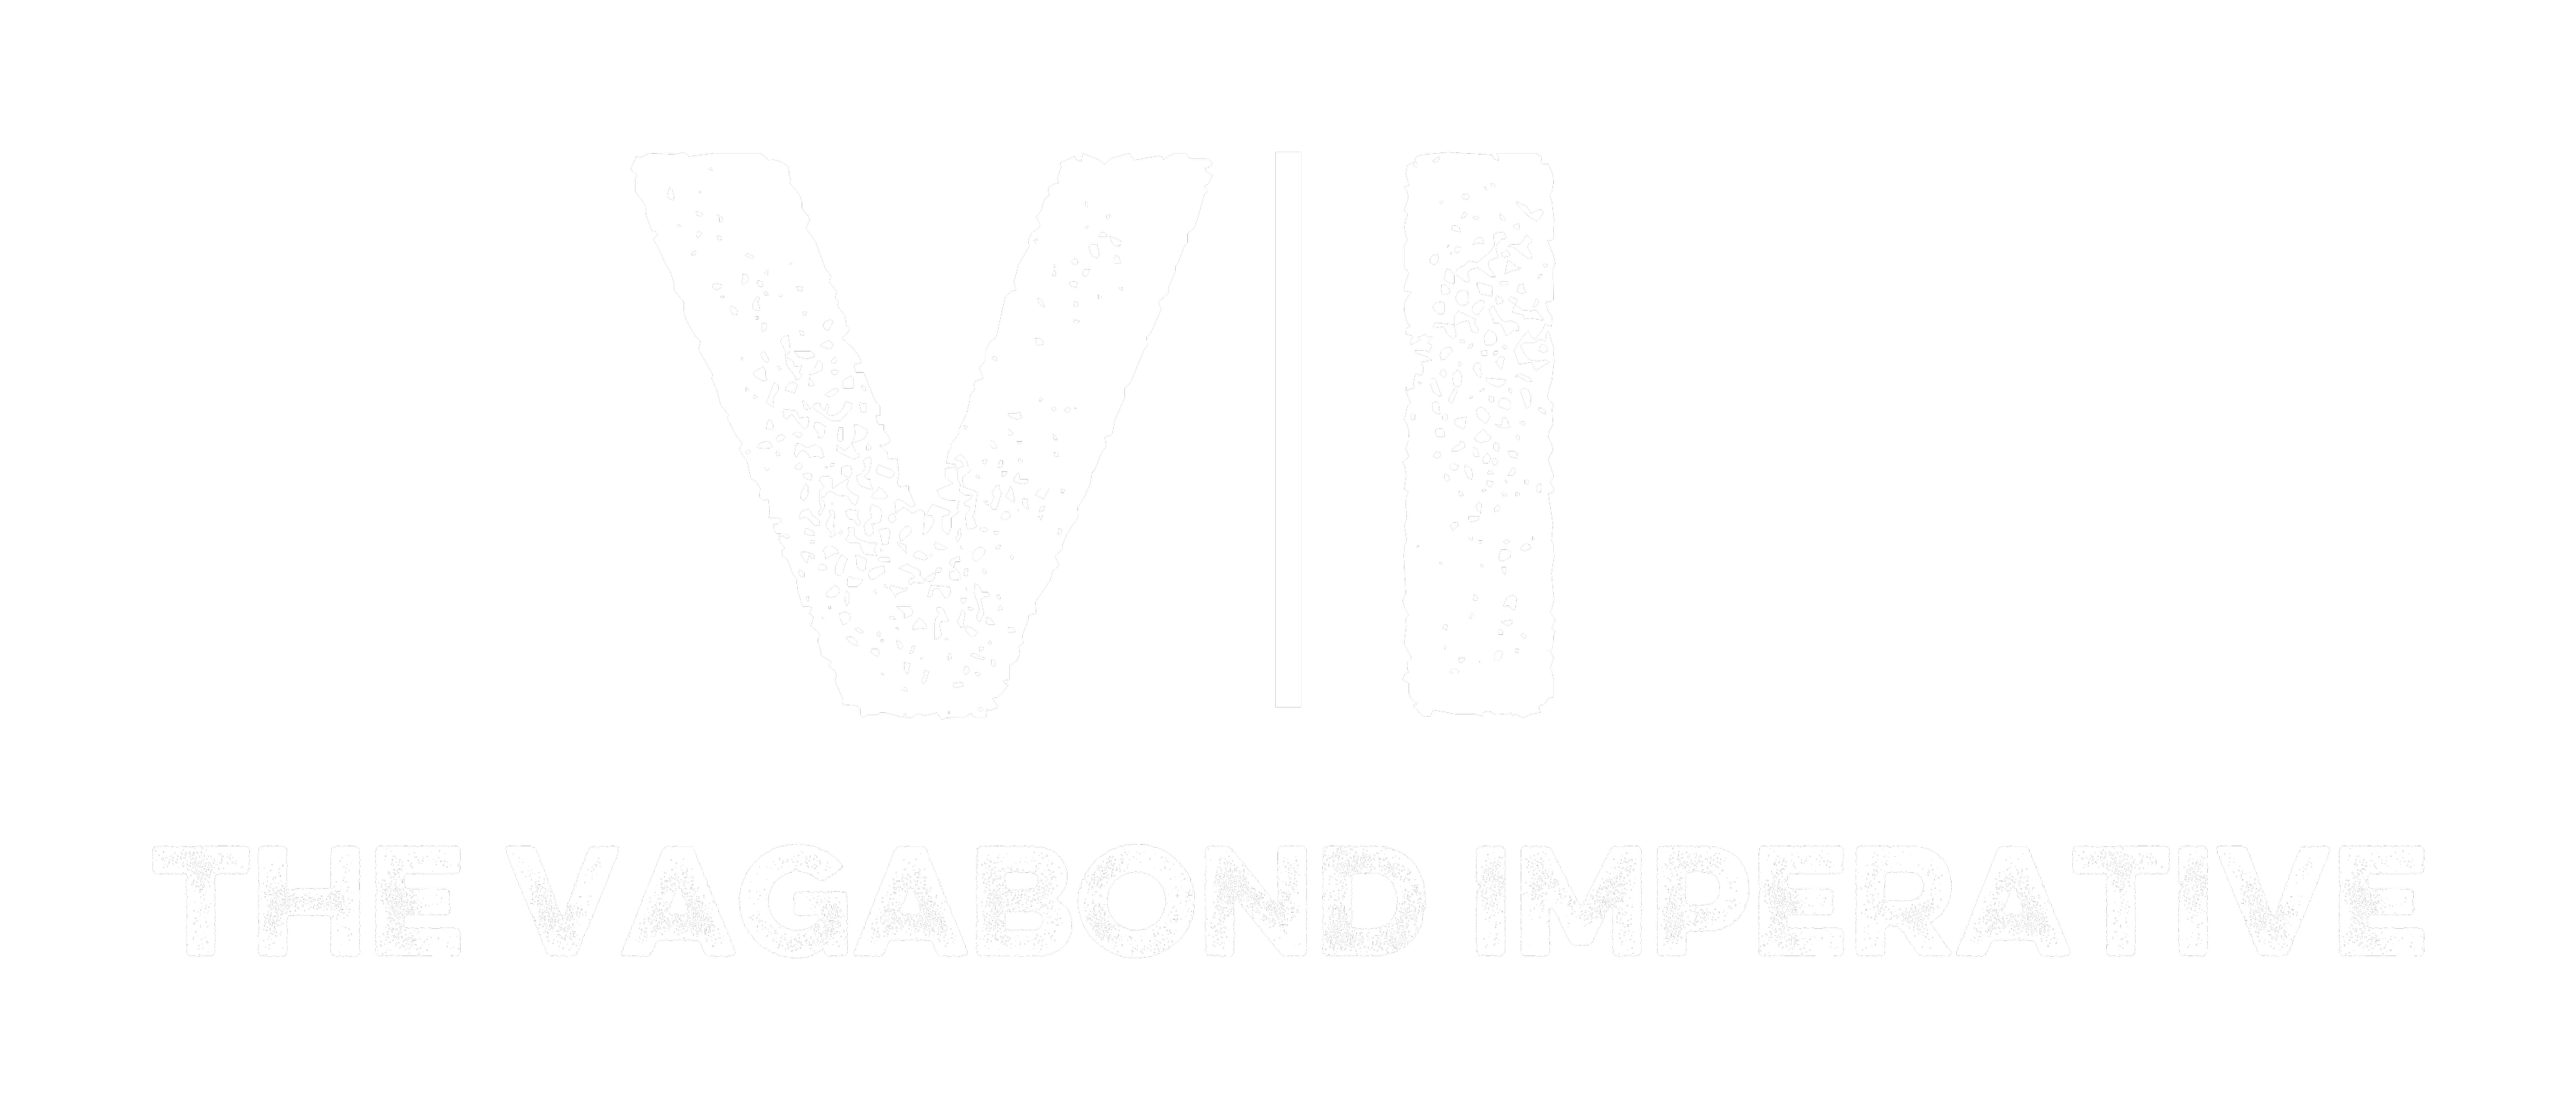 The Vagabond Imperative